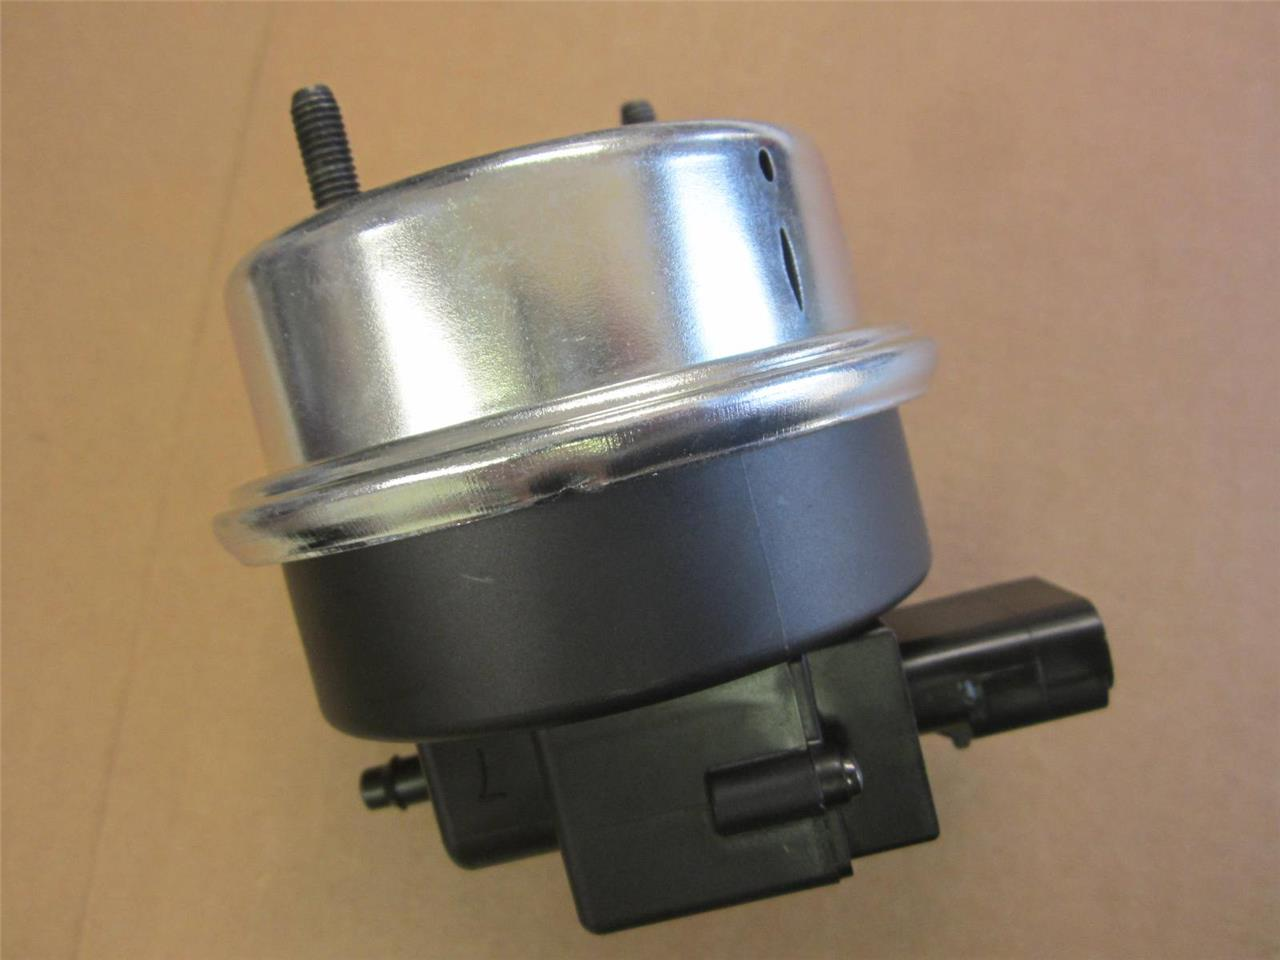 Details about Mopar Chrysler Dodge Eagle Plymouth Cruise Control Servo  Speed Control # 4669977